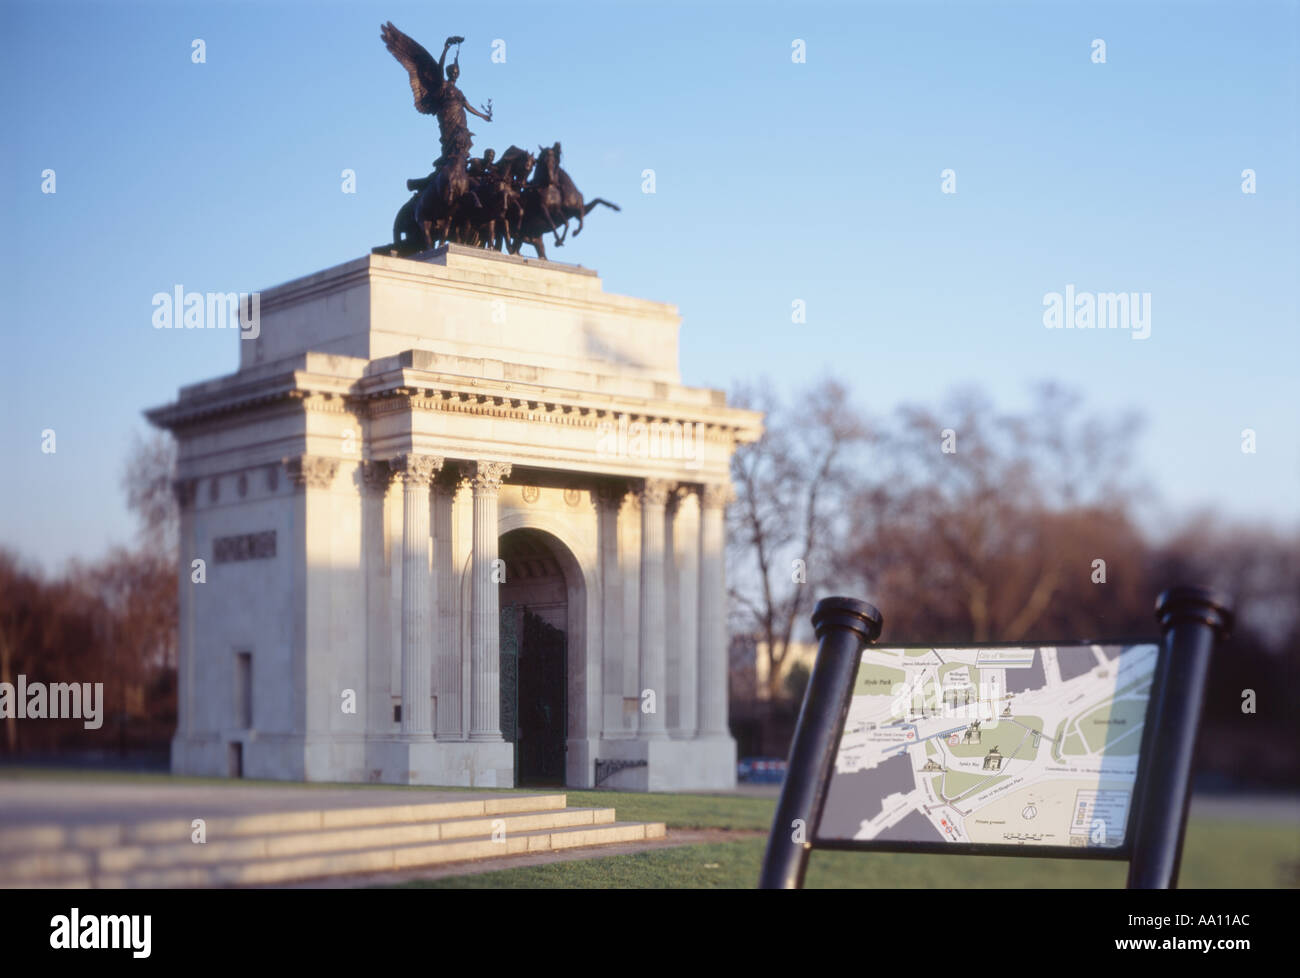 London Duke of Wellington Arch and Tourist Map near Londons Hyde Park by Steven Dusk - Stock Image